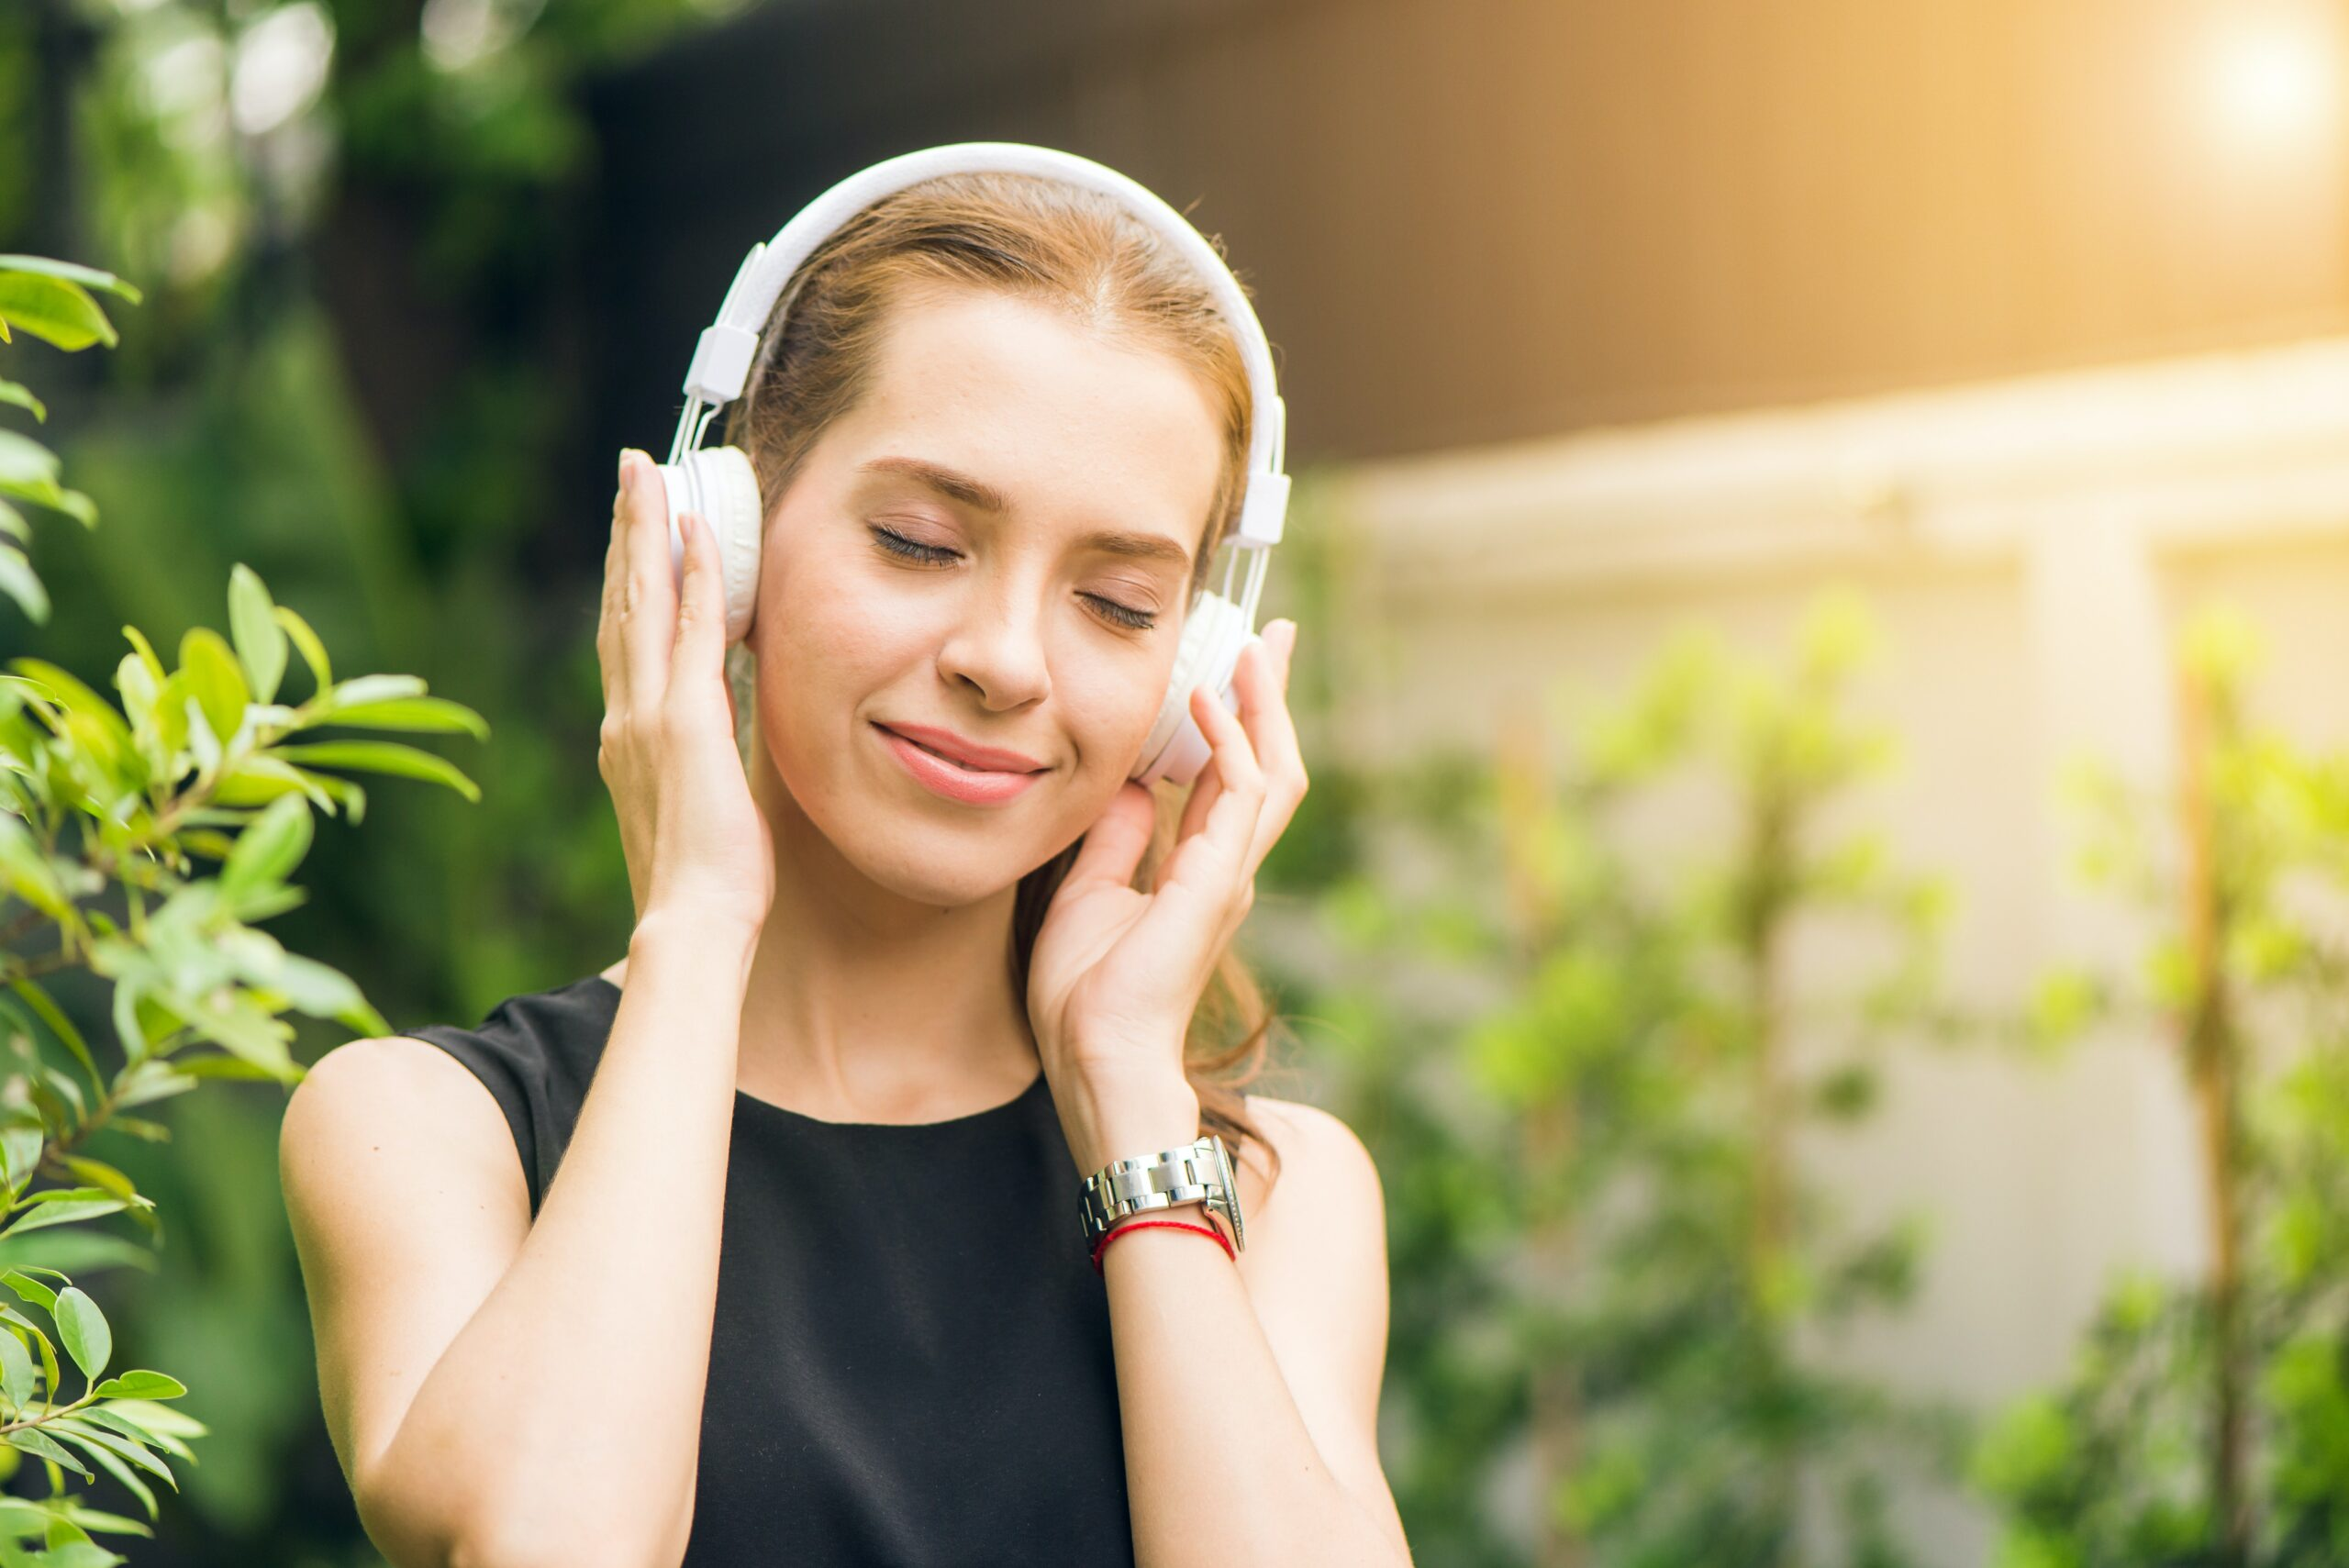 listening to music to get relief from stress